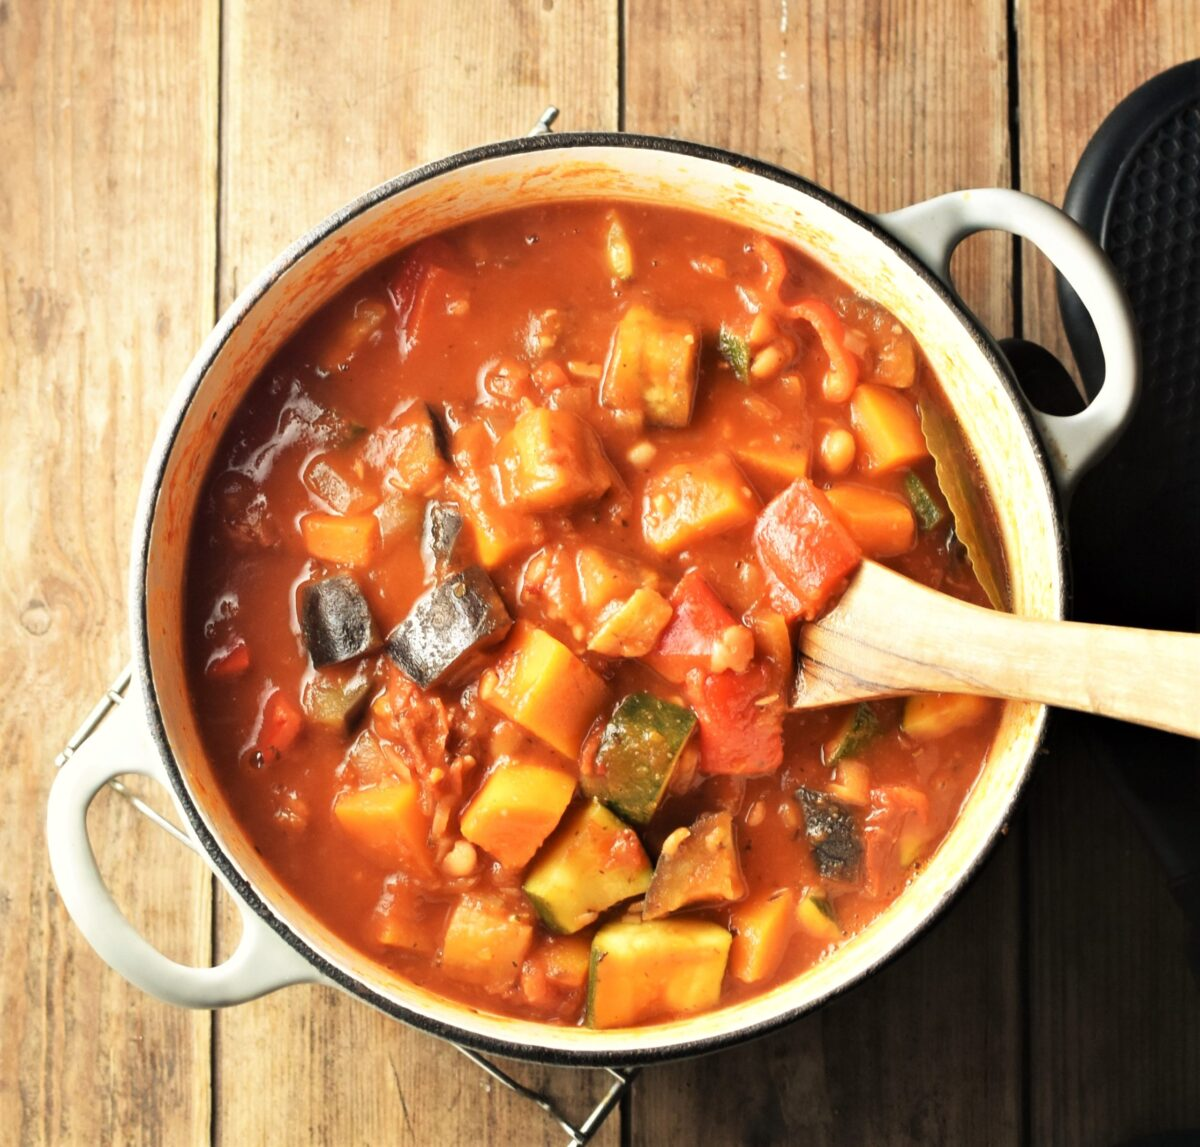 Chunky vegetable stew in tomato sauce in large white post with wooden spoon.